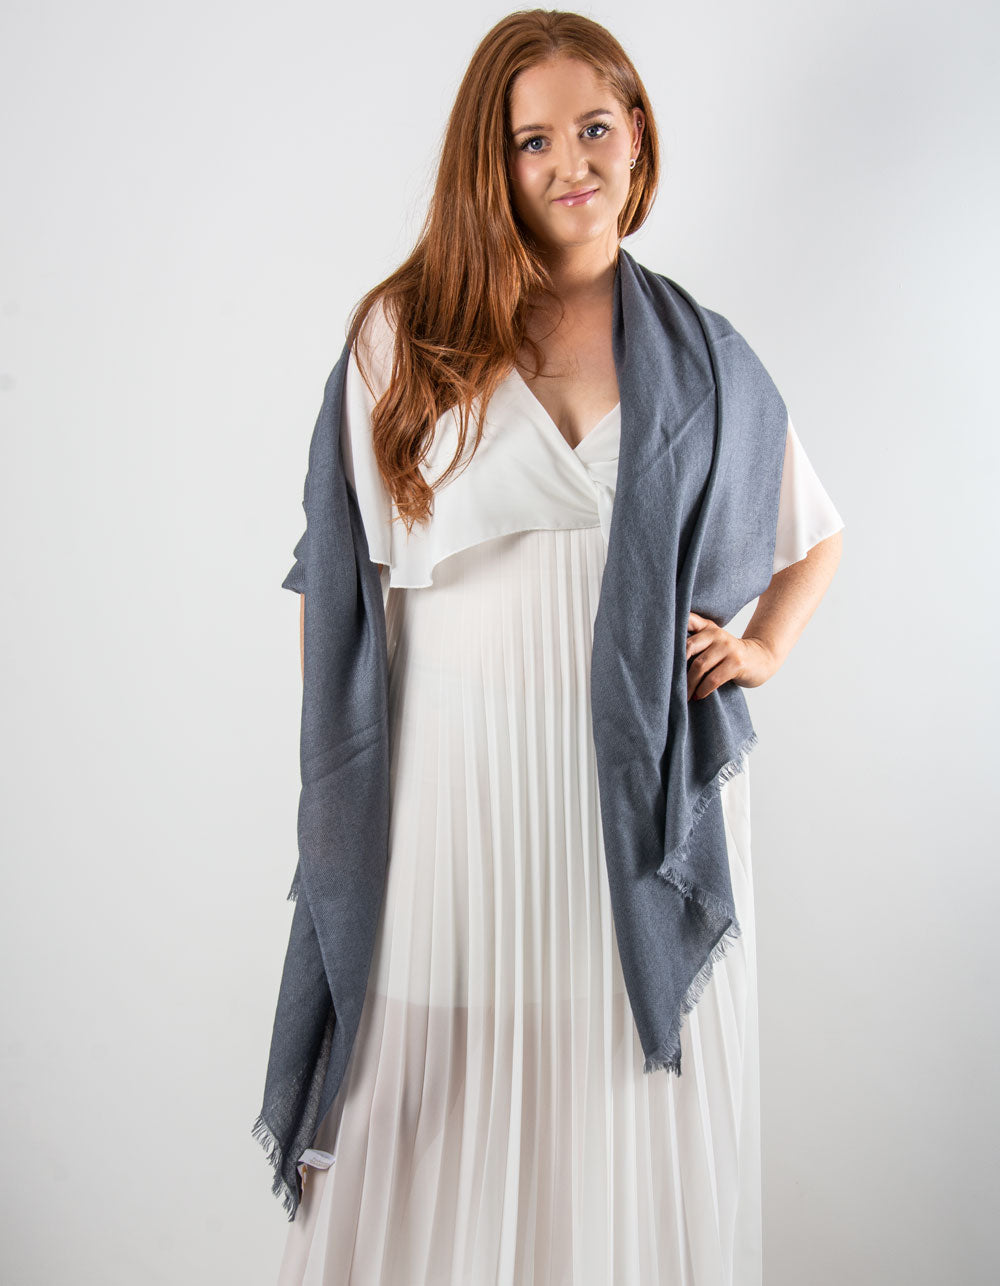 an image showing a cashmere wedding pashmina in dark grey